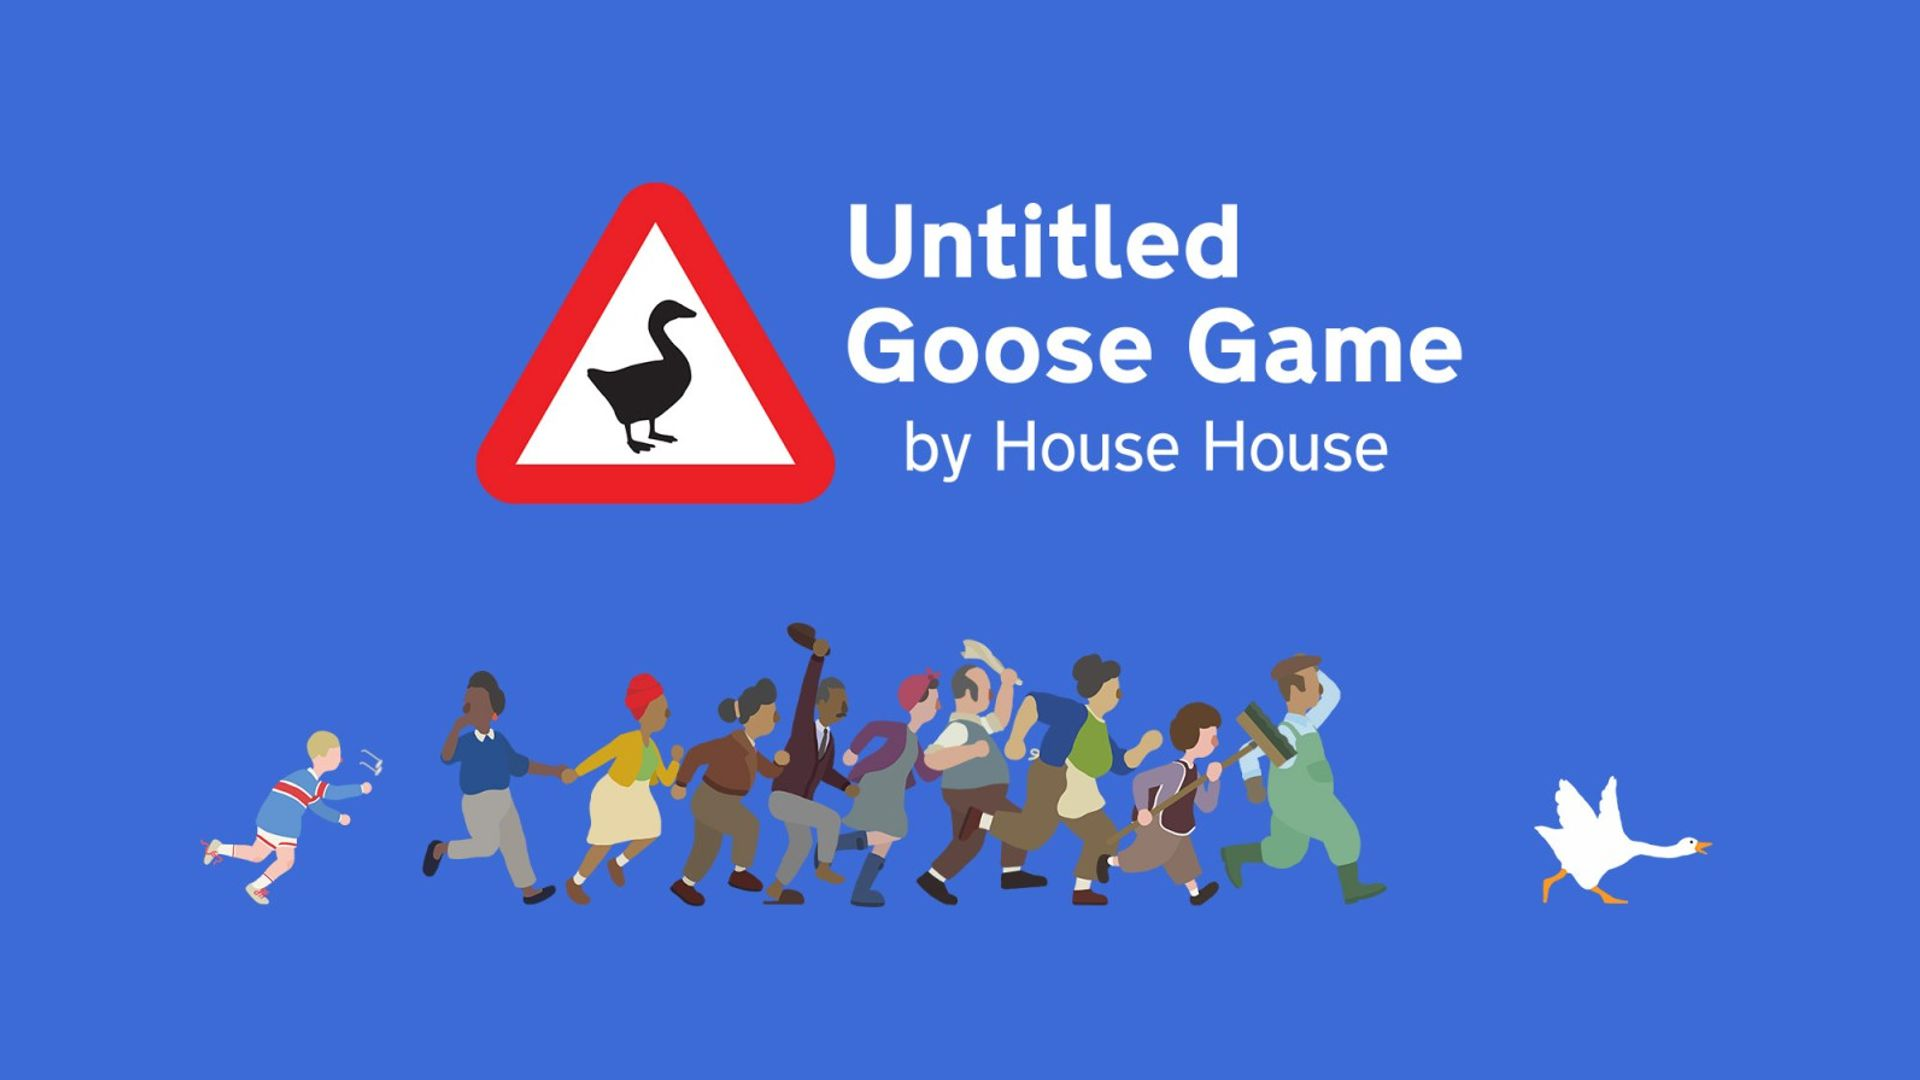 Untitled Goose Game Principal